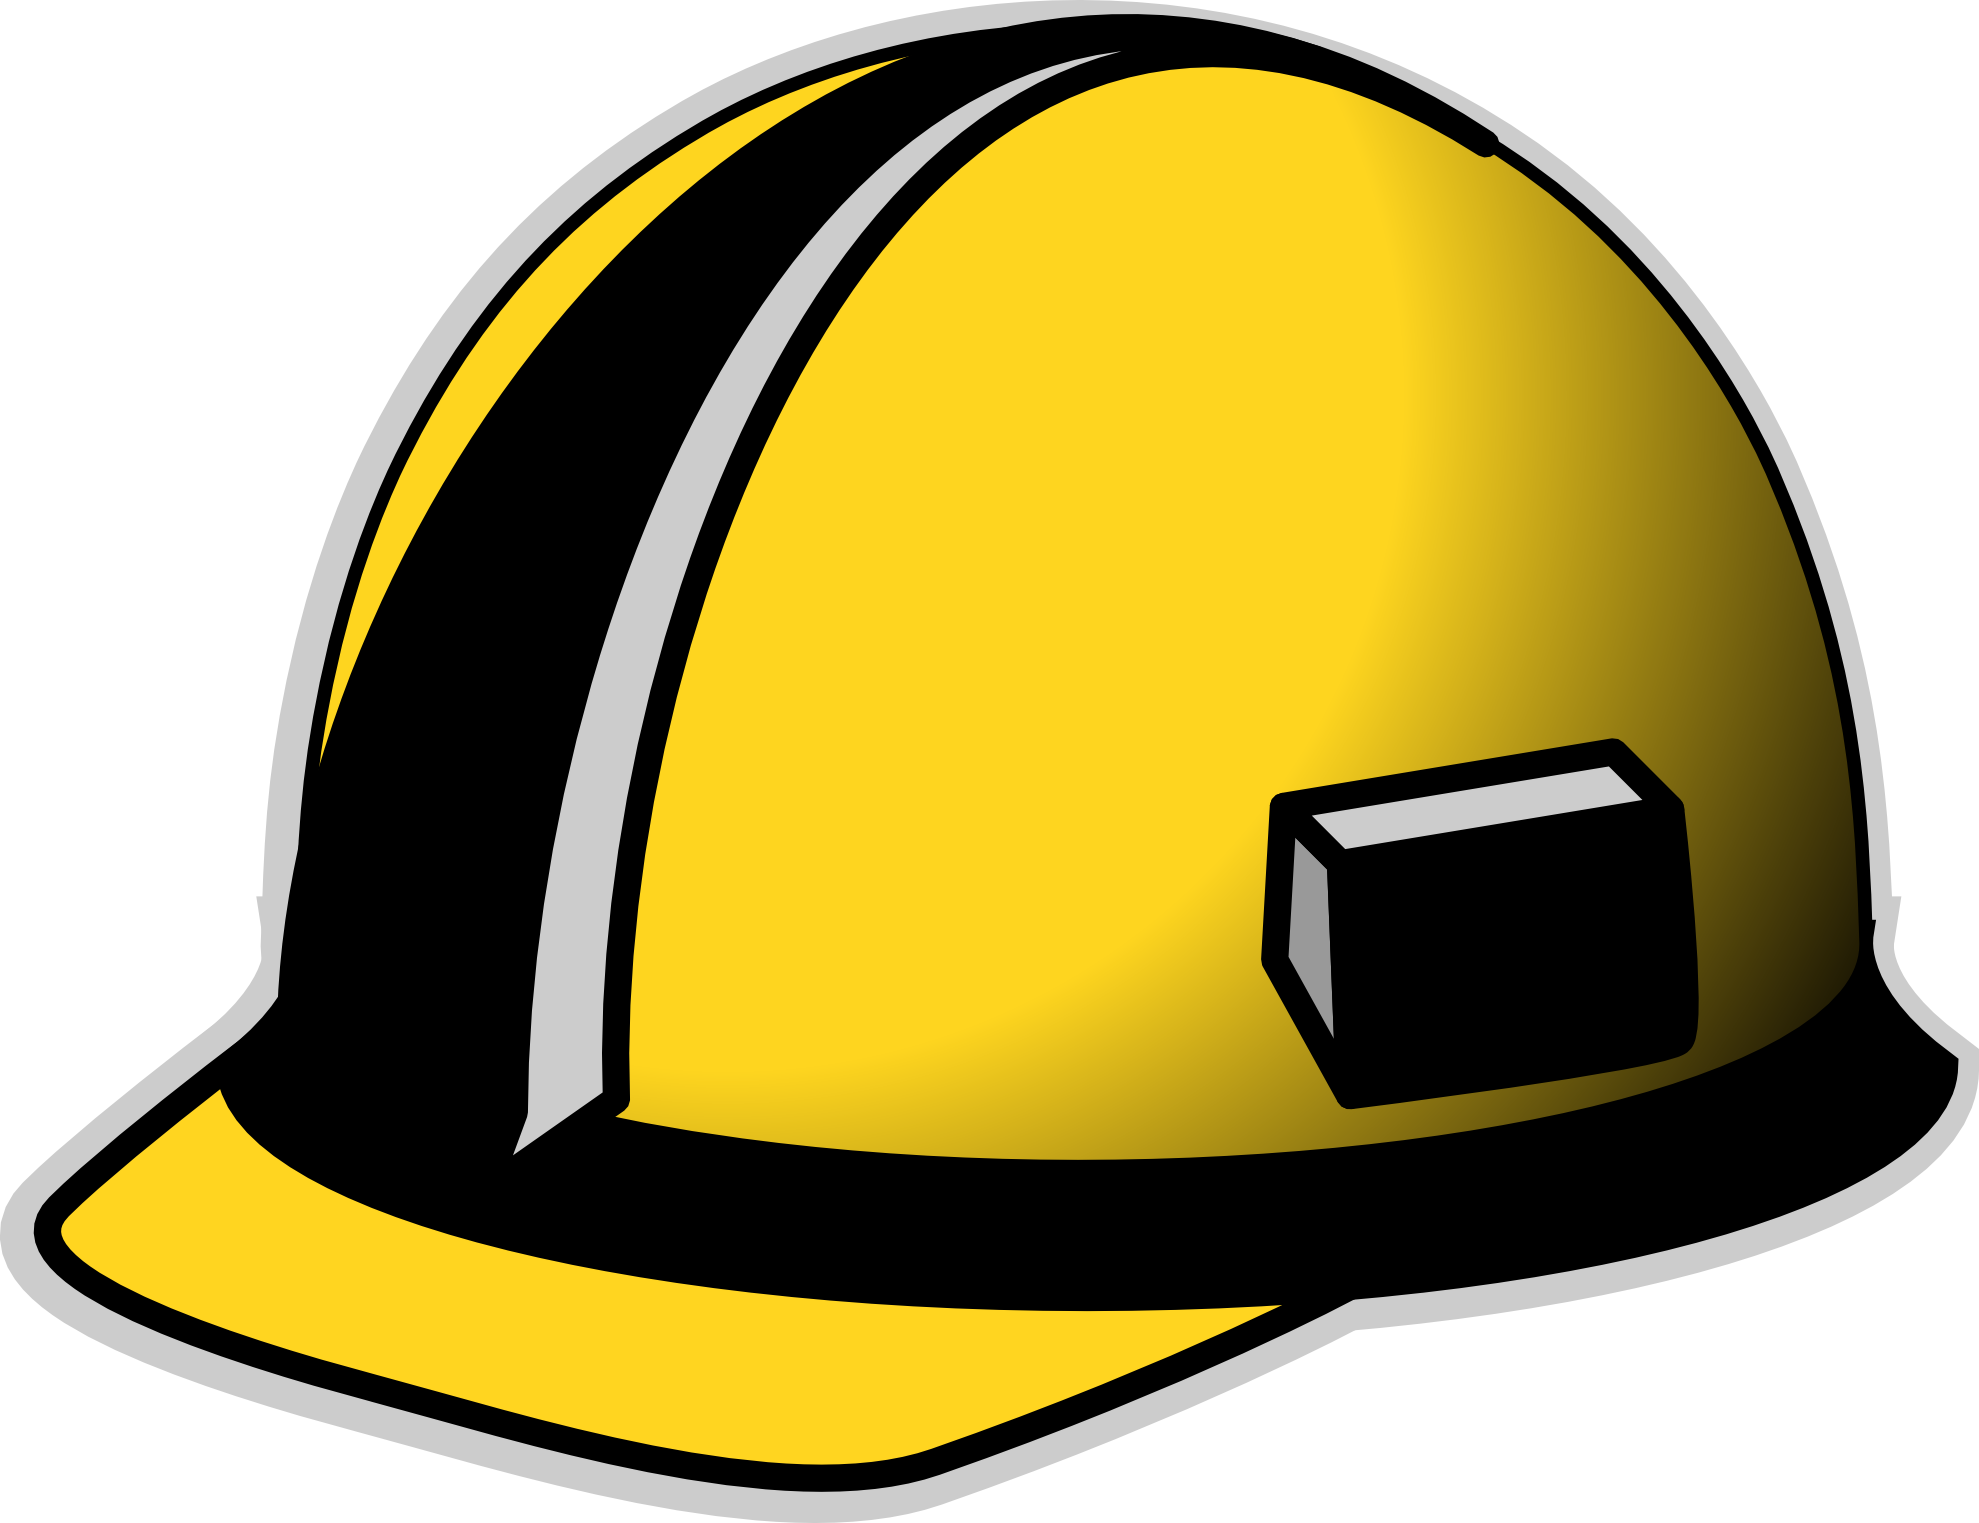 Hard Hat Coloring Page - ClipArt Best